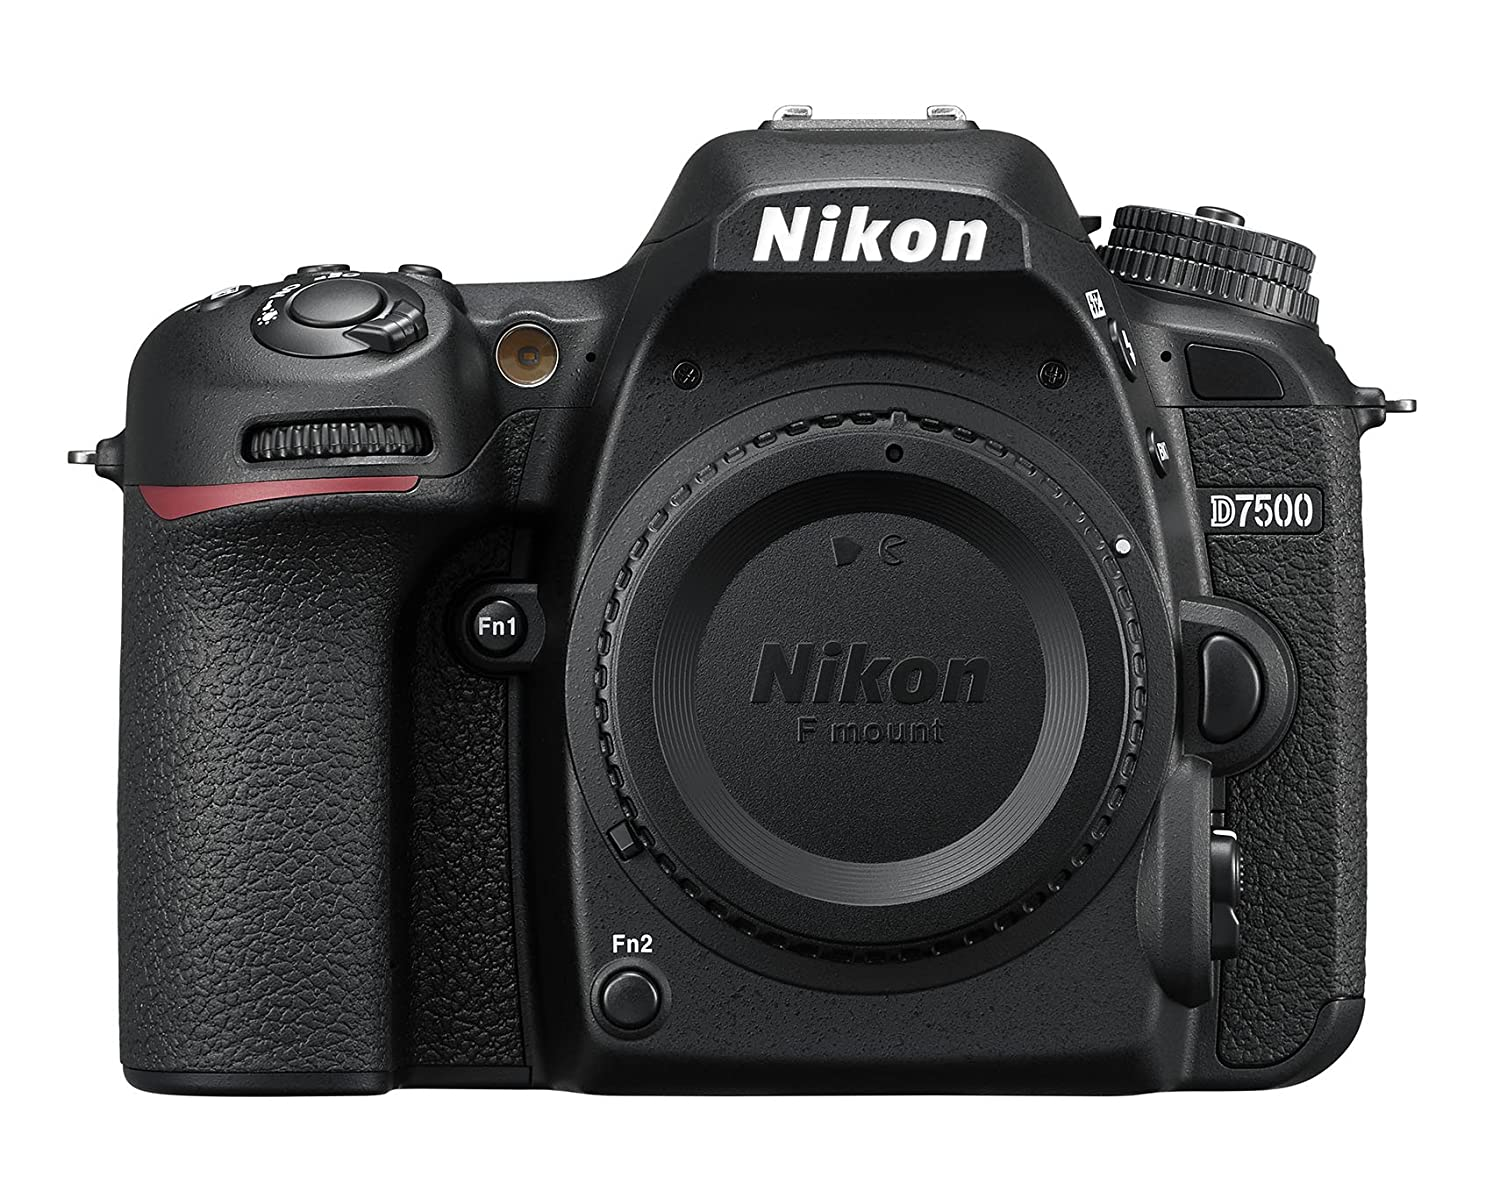 Nikon D7500 Digital DSLR Camera Body - Black